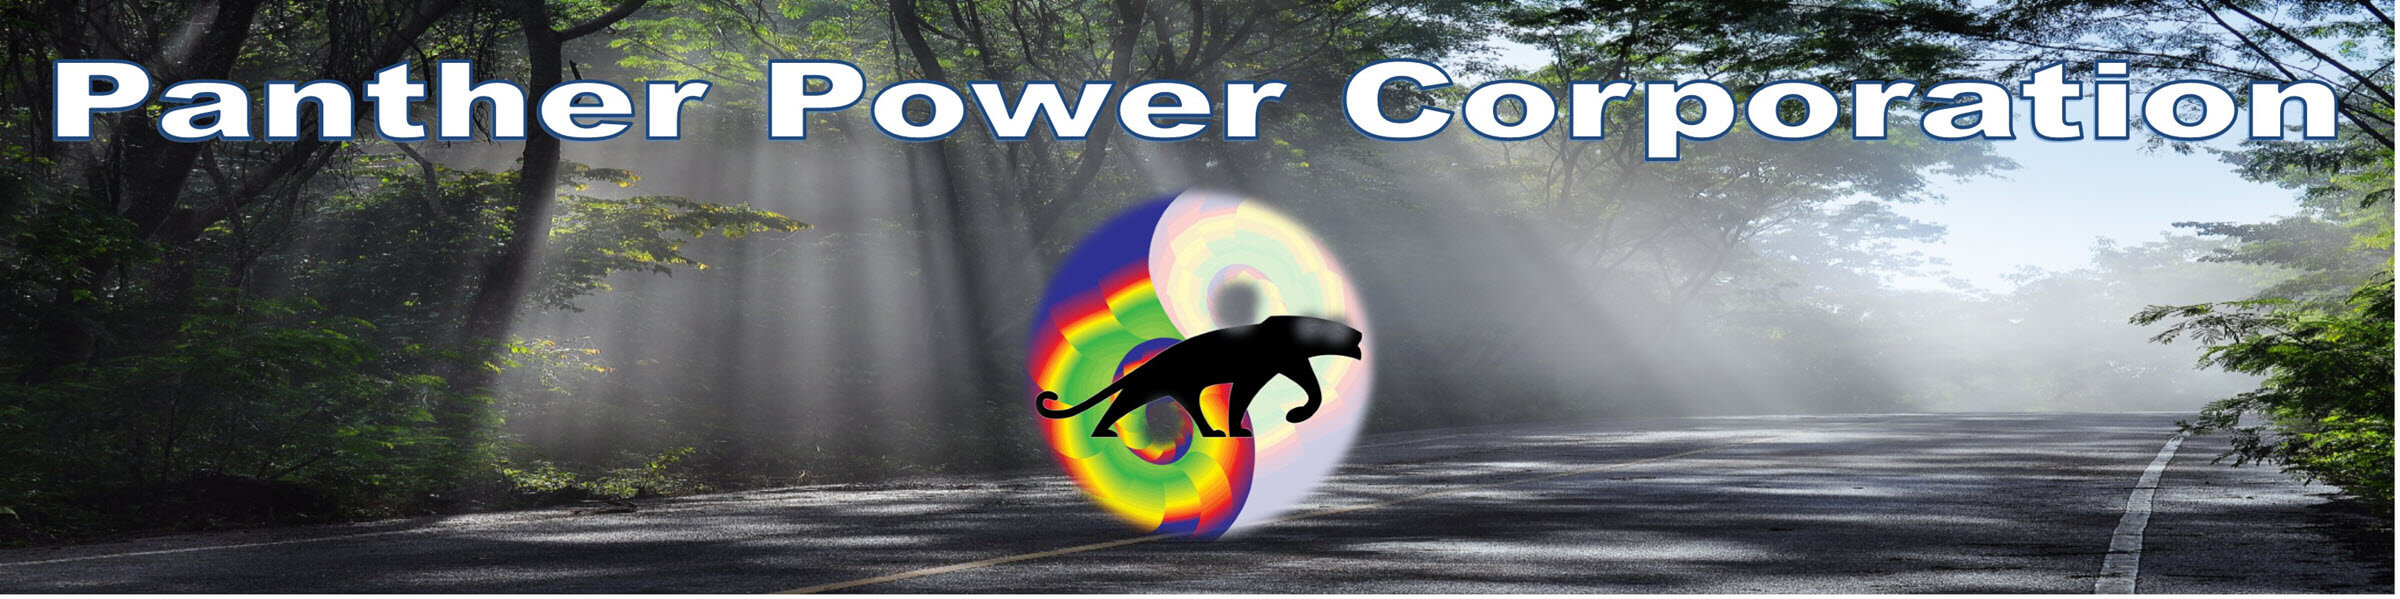 Panther Power Corporation